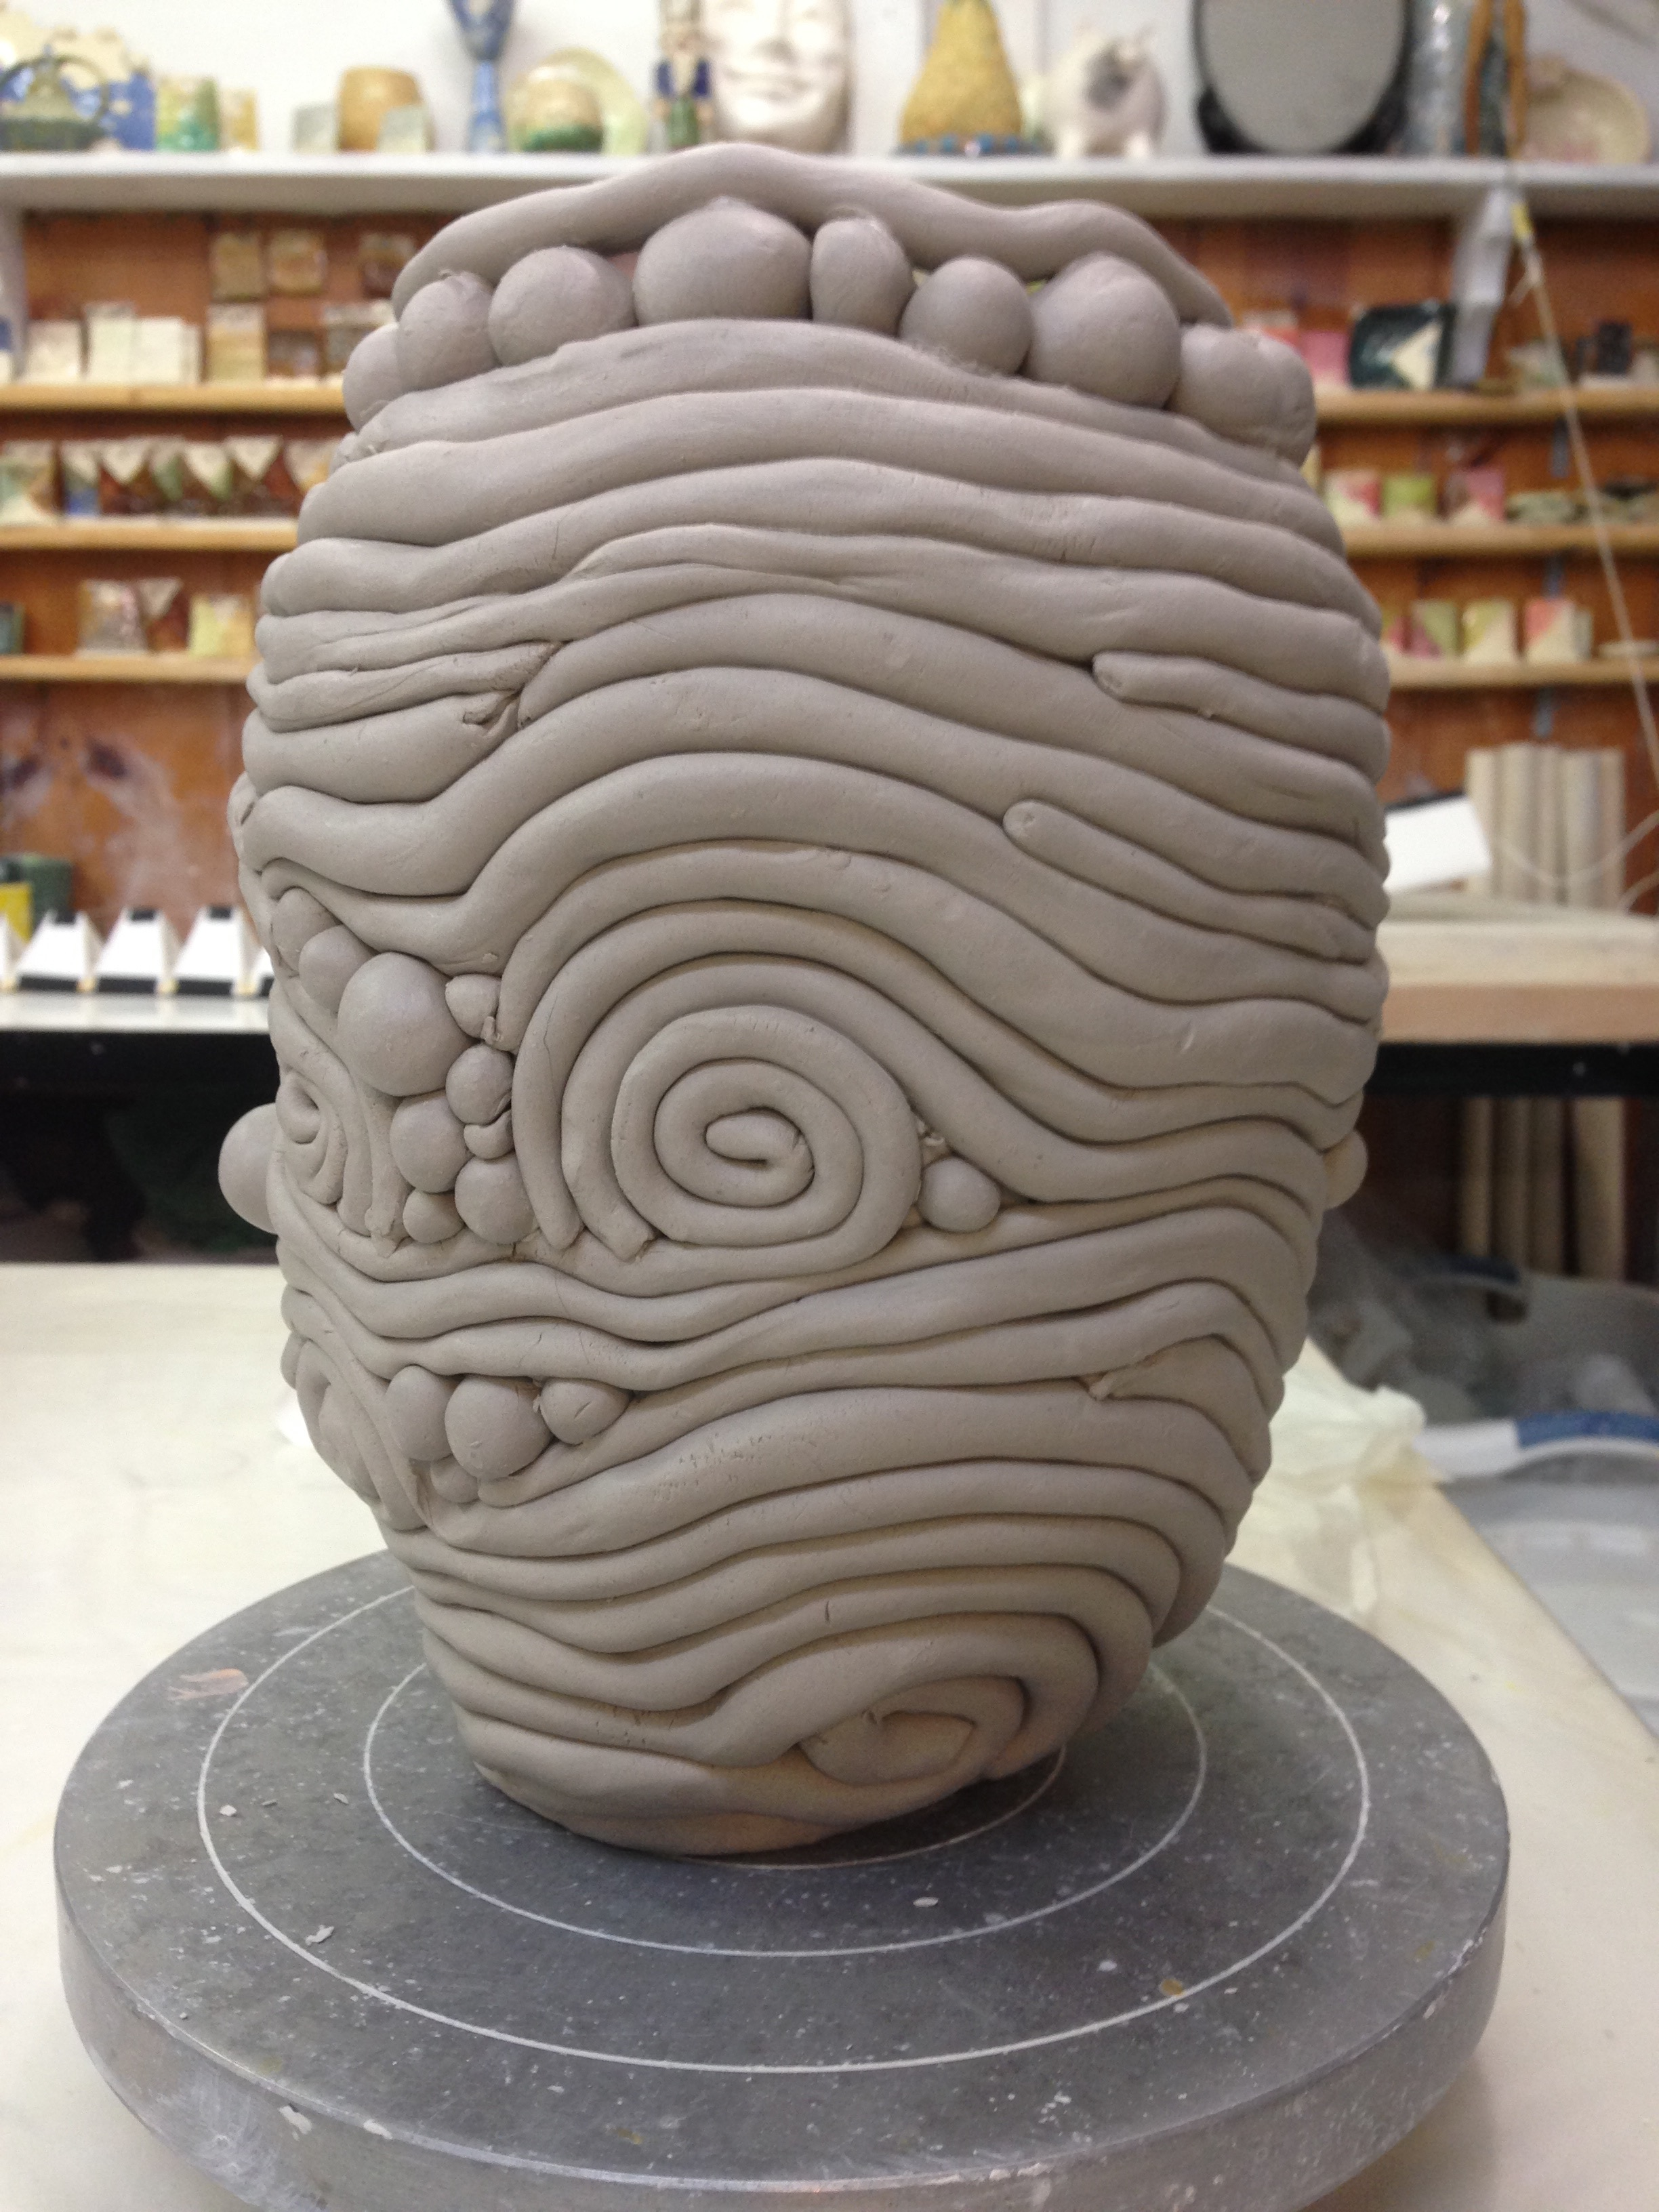 Coil pots are a favorite of mine